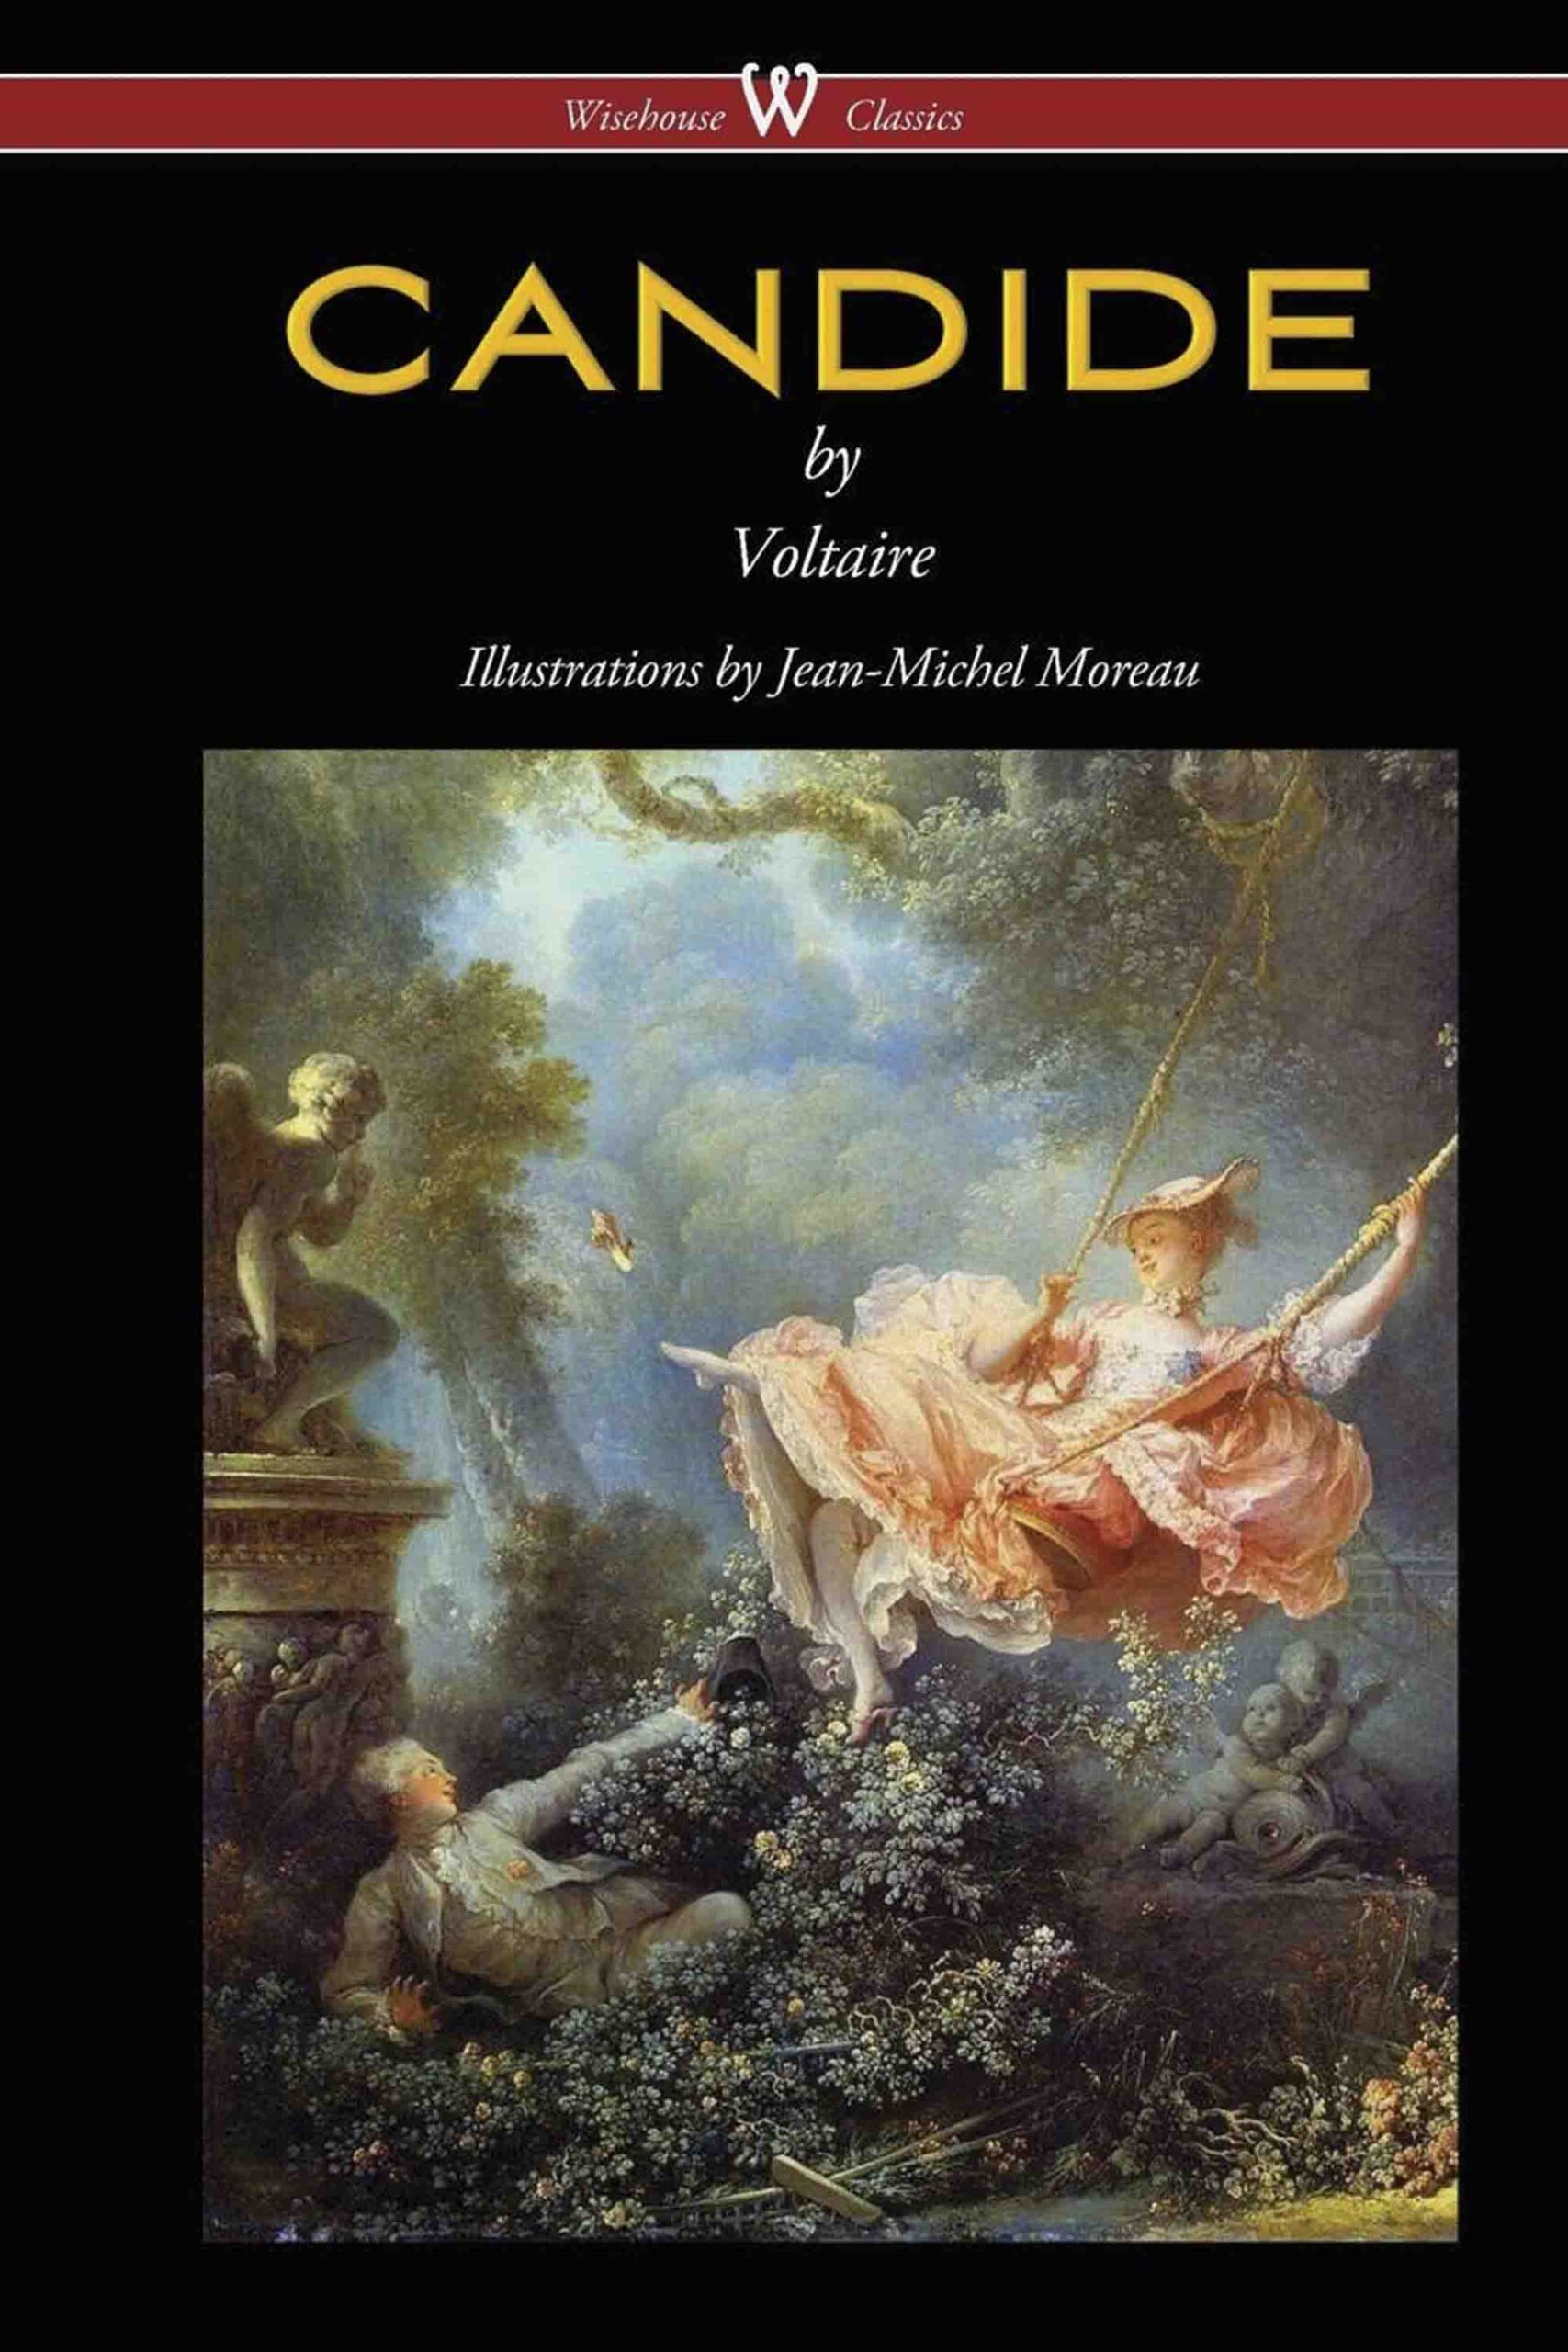 Candide (Wisehouse Classics – with Illustrations by Jean-Michel Moreau)